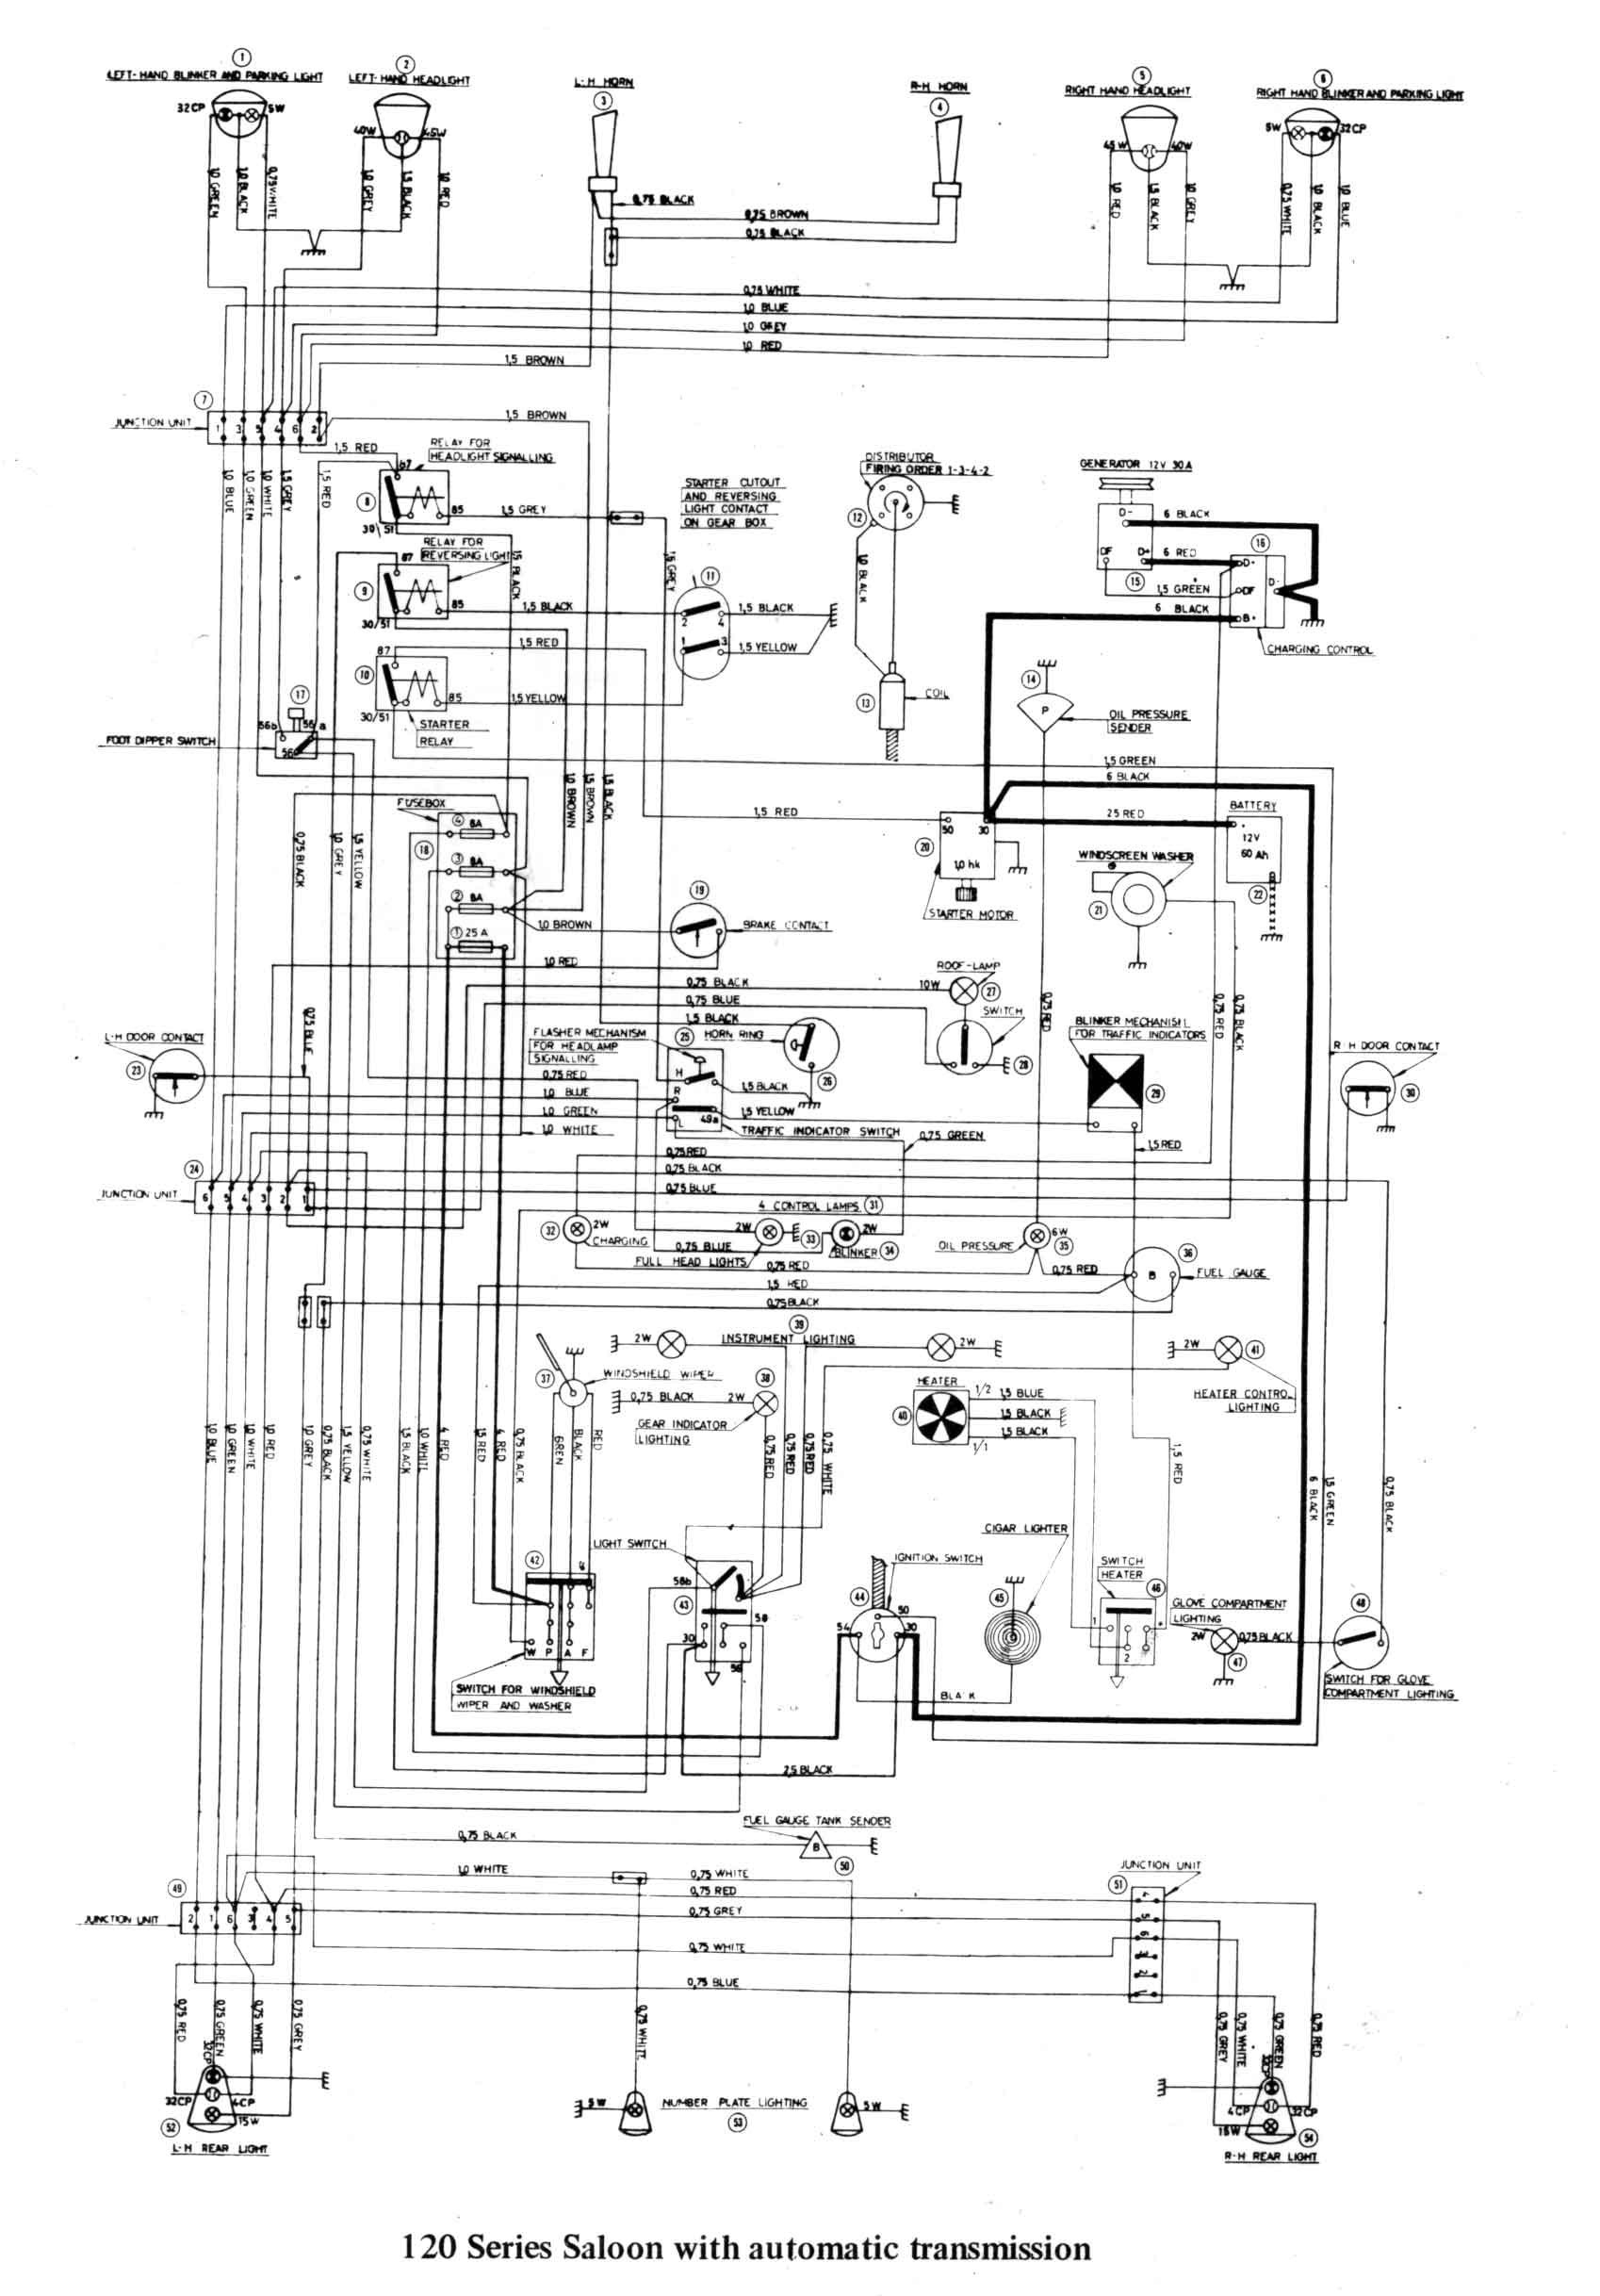 turn signal wiring diagram chevy truck Download-Related Post 17-t